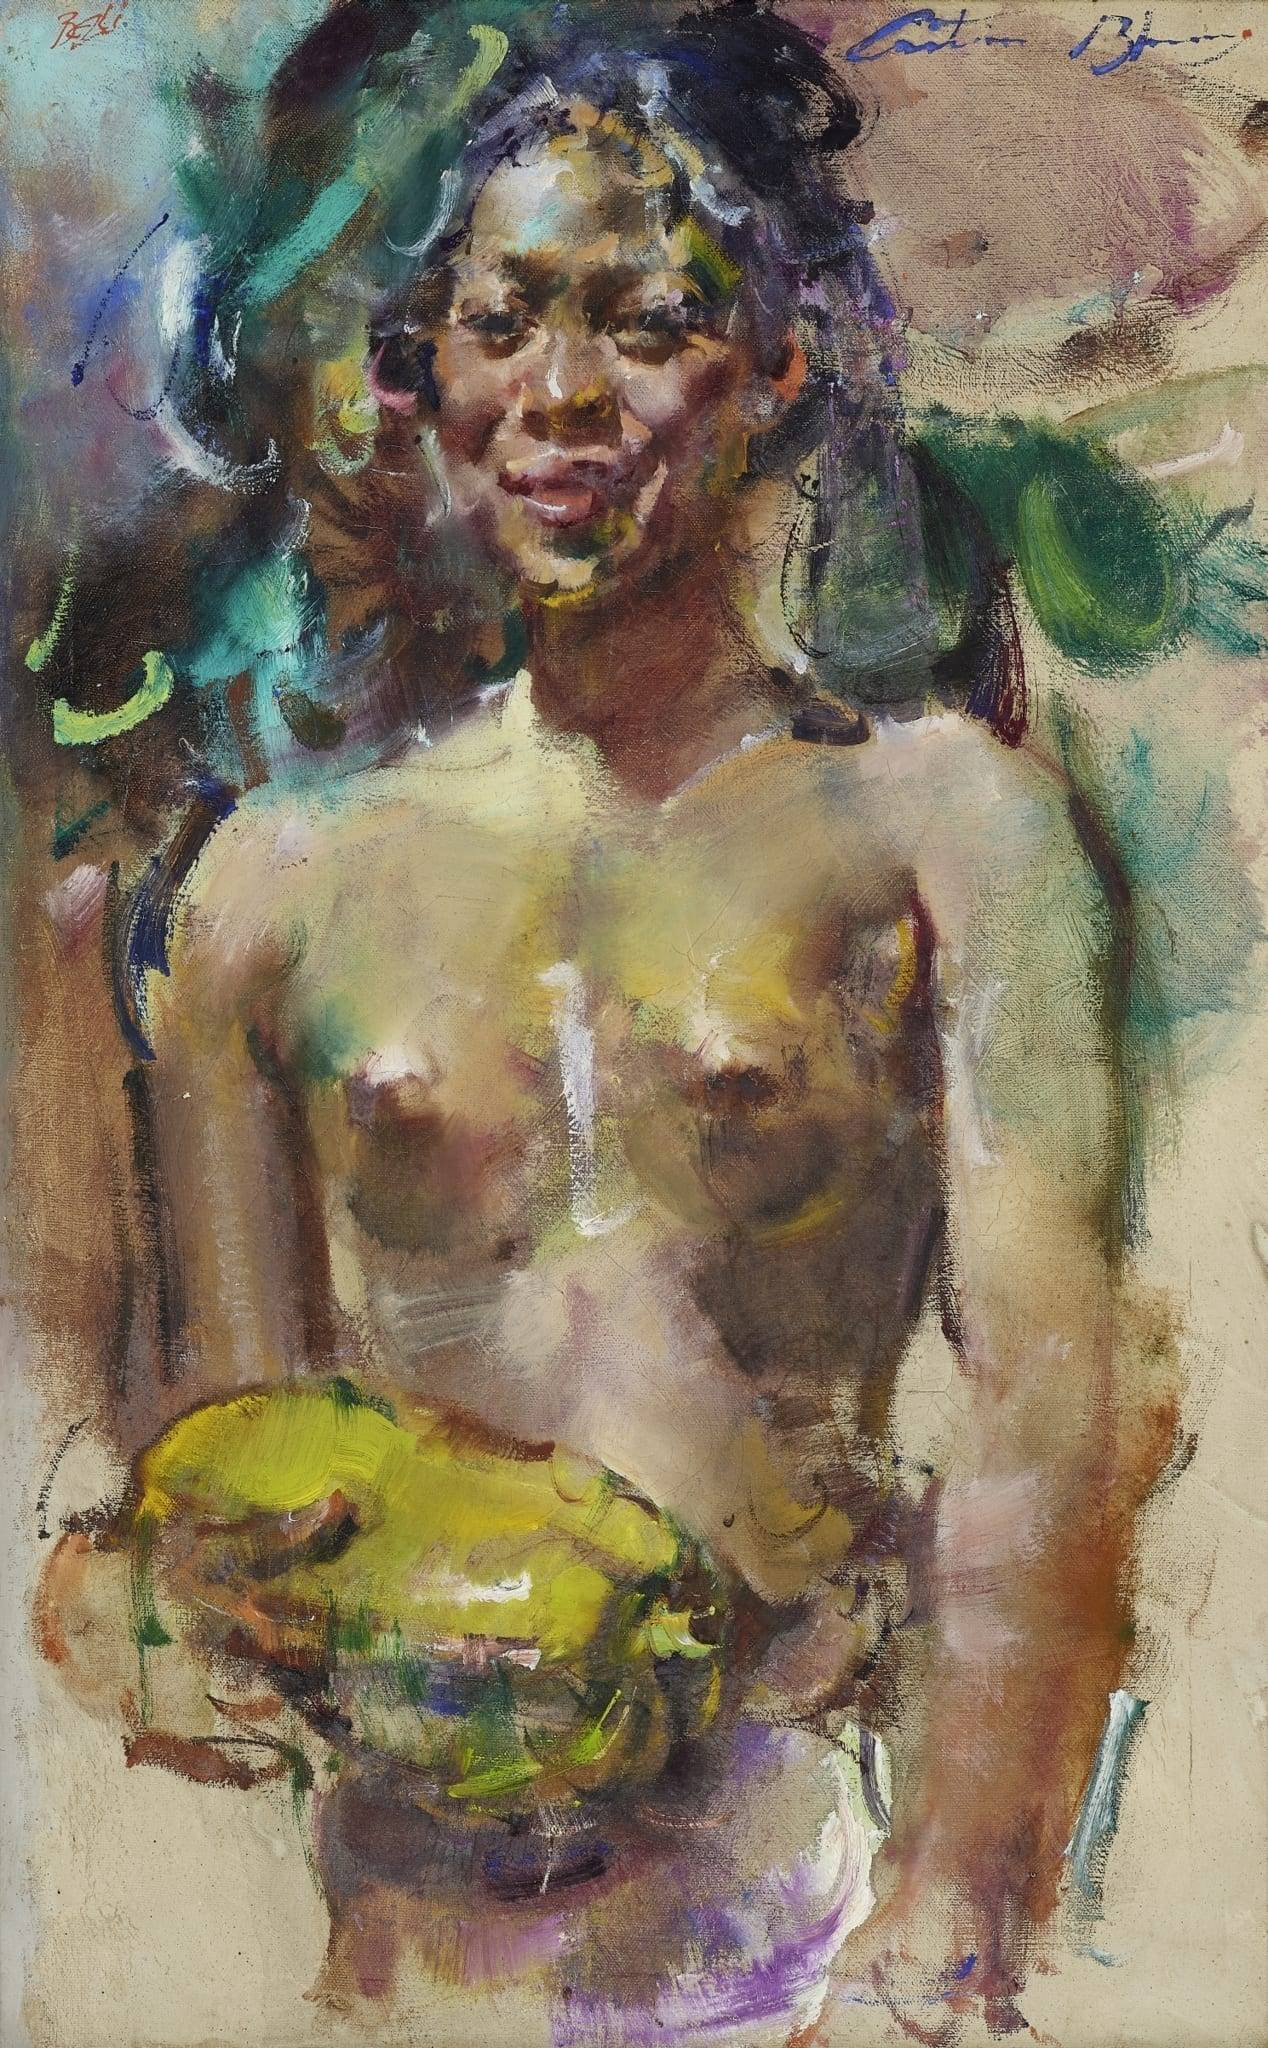 Antonio Blanco (American-Indonesian, 1912-1999) Woman Bearing Fruit (link) 1970s, oil on canvas 41 x 32 cm Estimate: HK$ 240,000 – 380,000